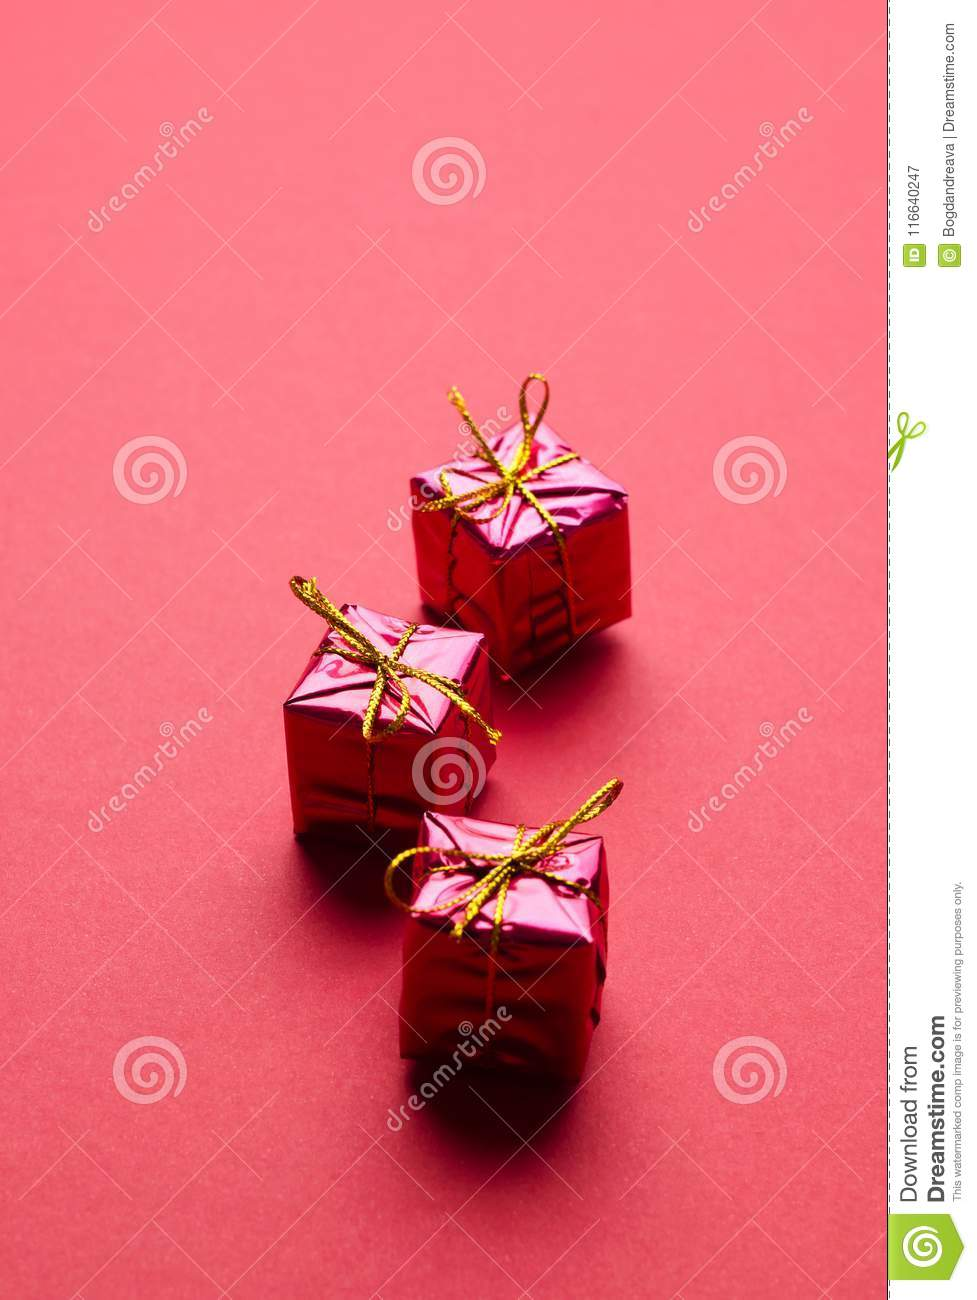 Small Christmas Gift Boxes stock image. Image of package - 116640247